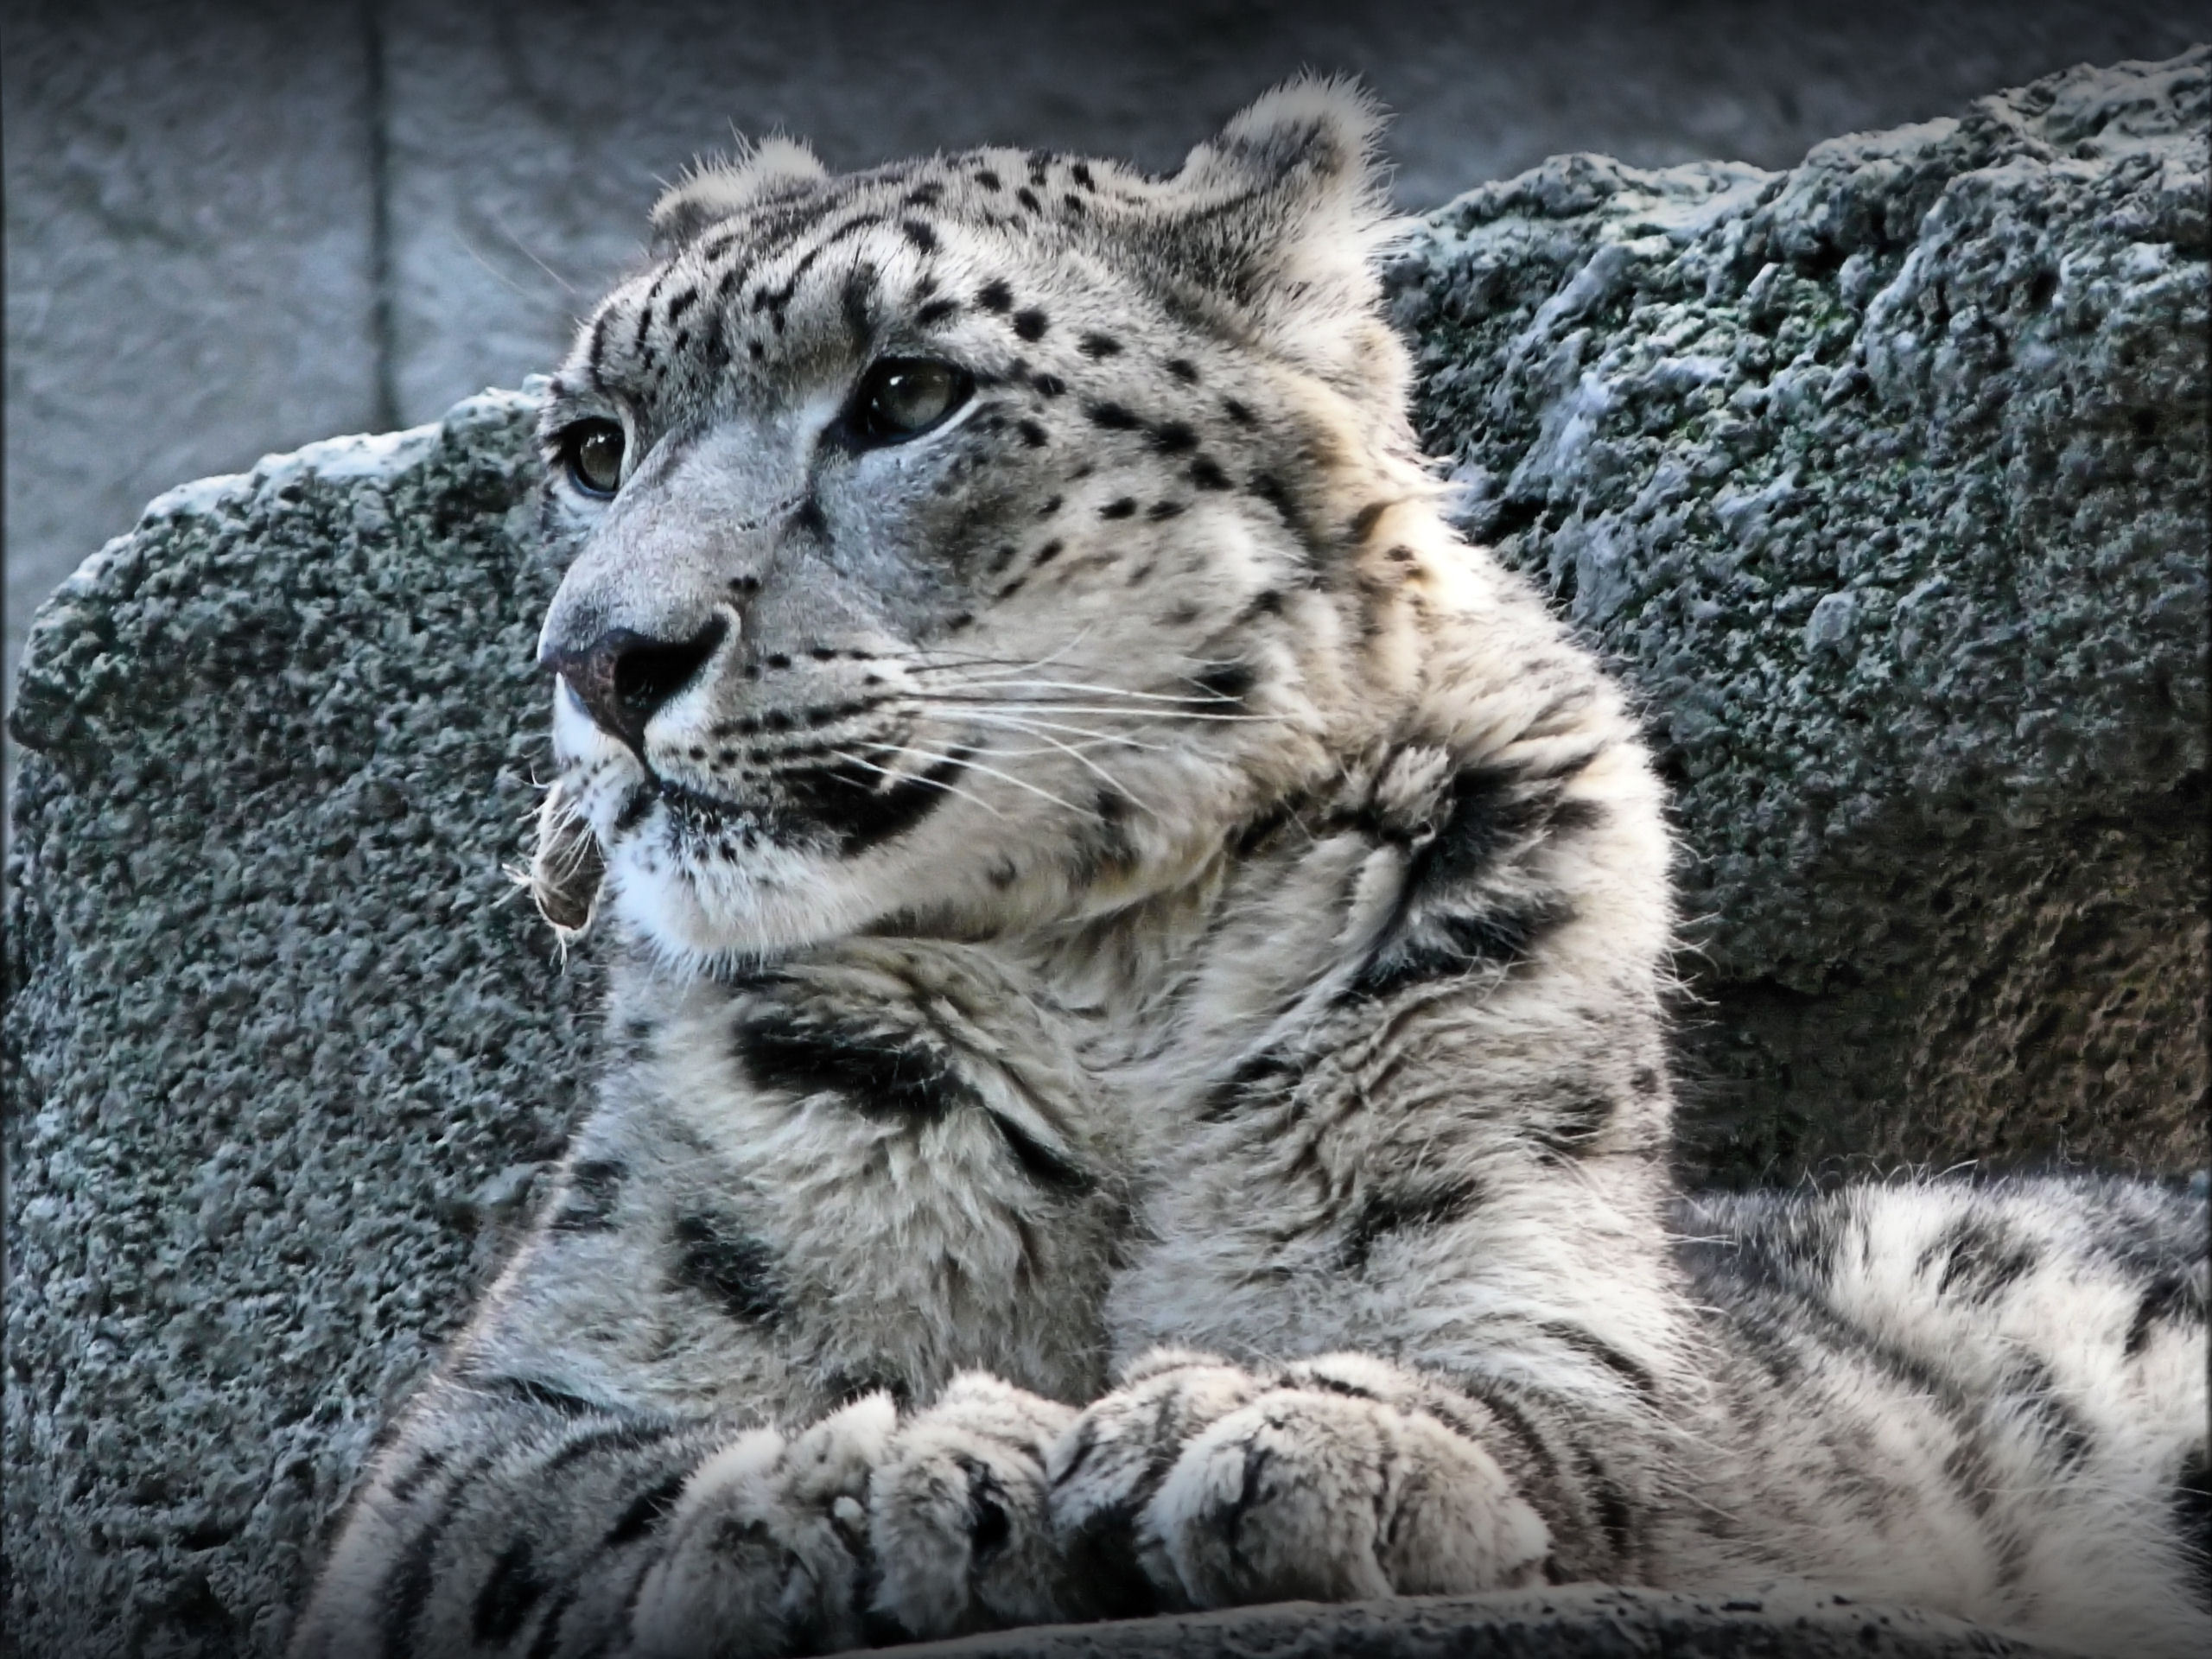 20439 download wallpaper Animals, Snow Leopard screensavers and pictures for free